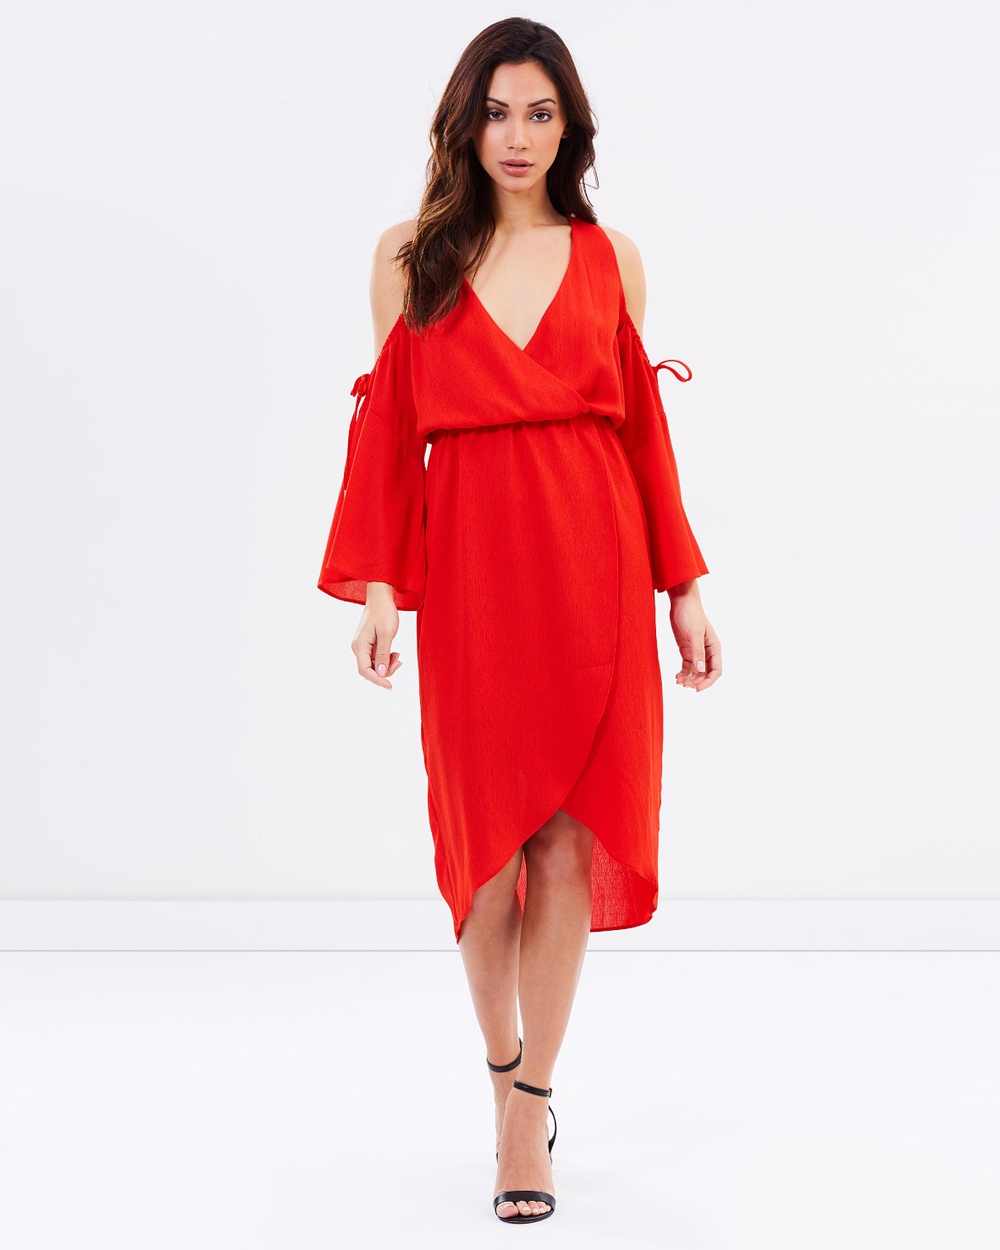 Photo of Atmos & Here Red ICONIC EXCLUSIVE - Vanity Cold Shoulder Wrap Dress - beautiful dress from Atmos & Here online